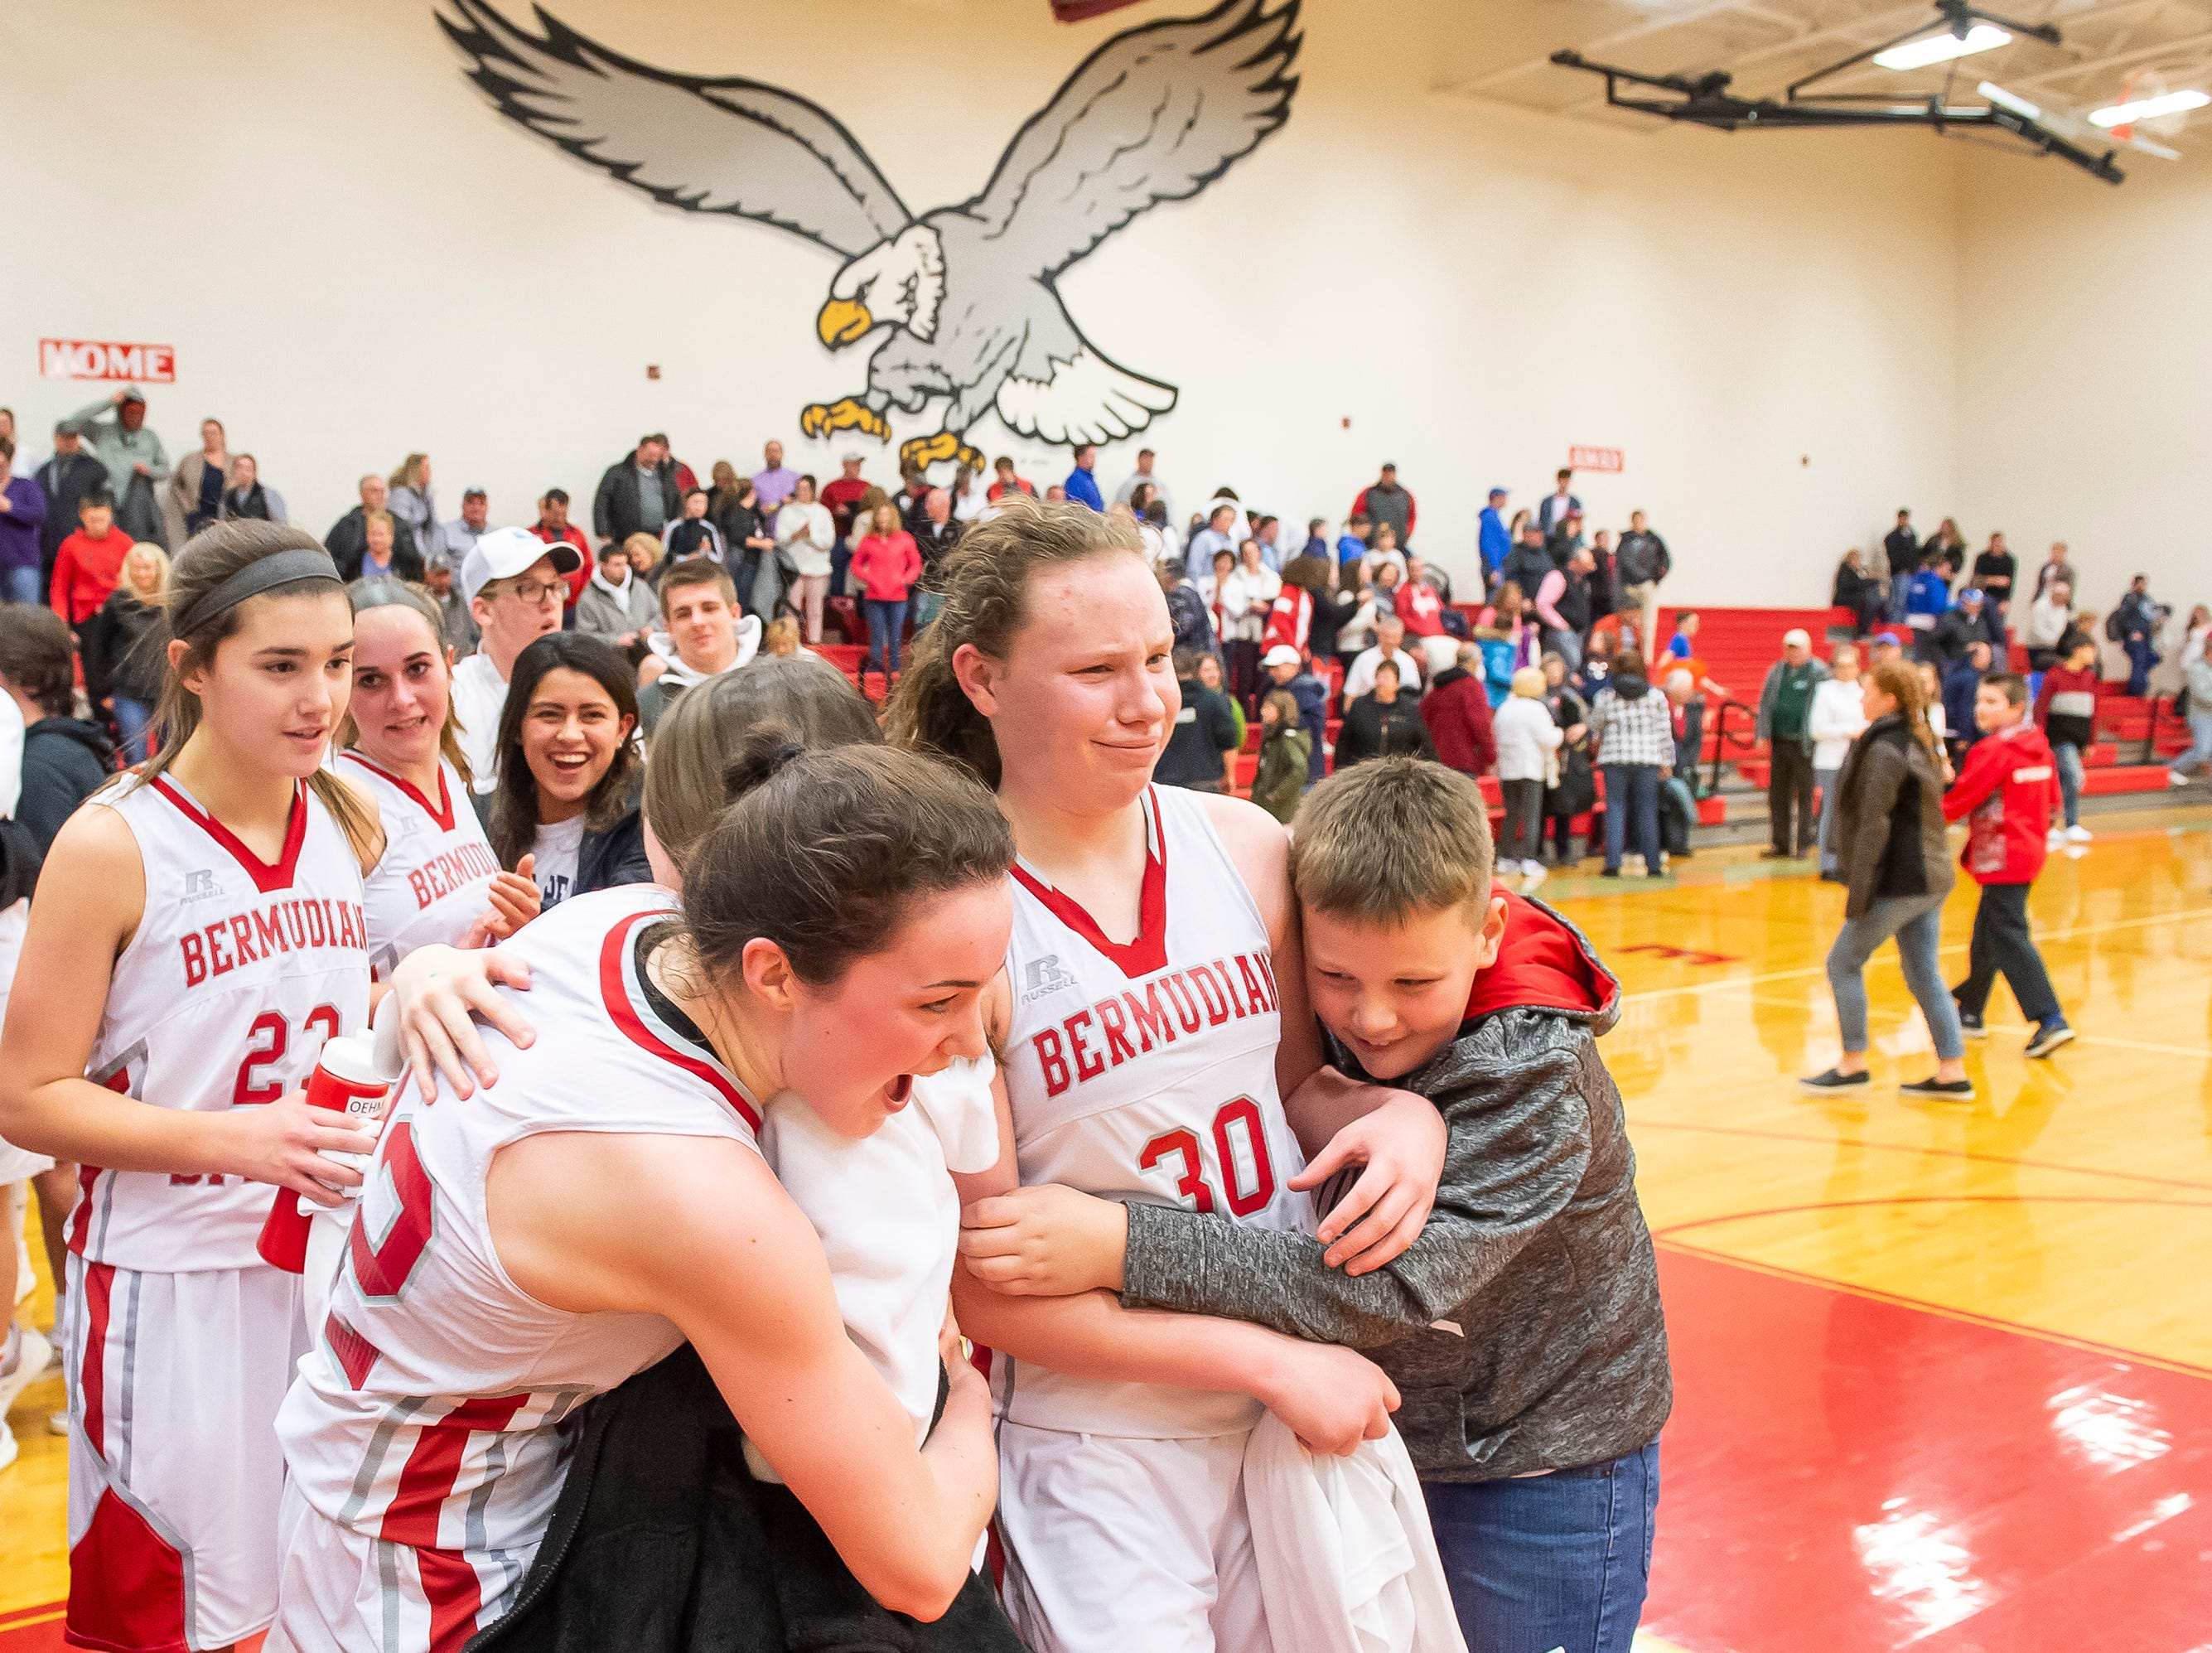 Bermudian Springs' Lillian Peters and Hannah Chenault (30) are greeted with hugs after defeating Northern Lebanon in the first round of the District III 4-A playoffs Tuesday, February 19, 2019. The Eagles won 58-52.